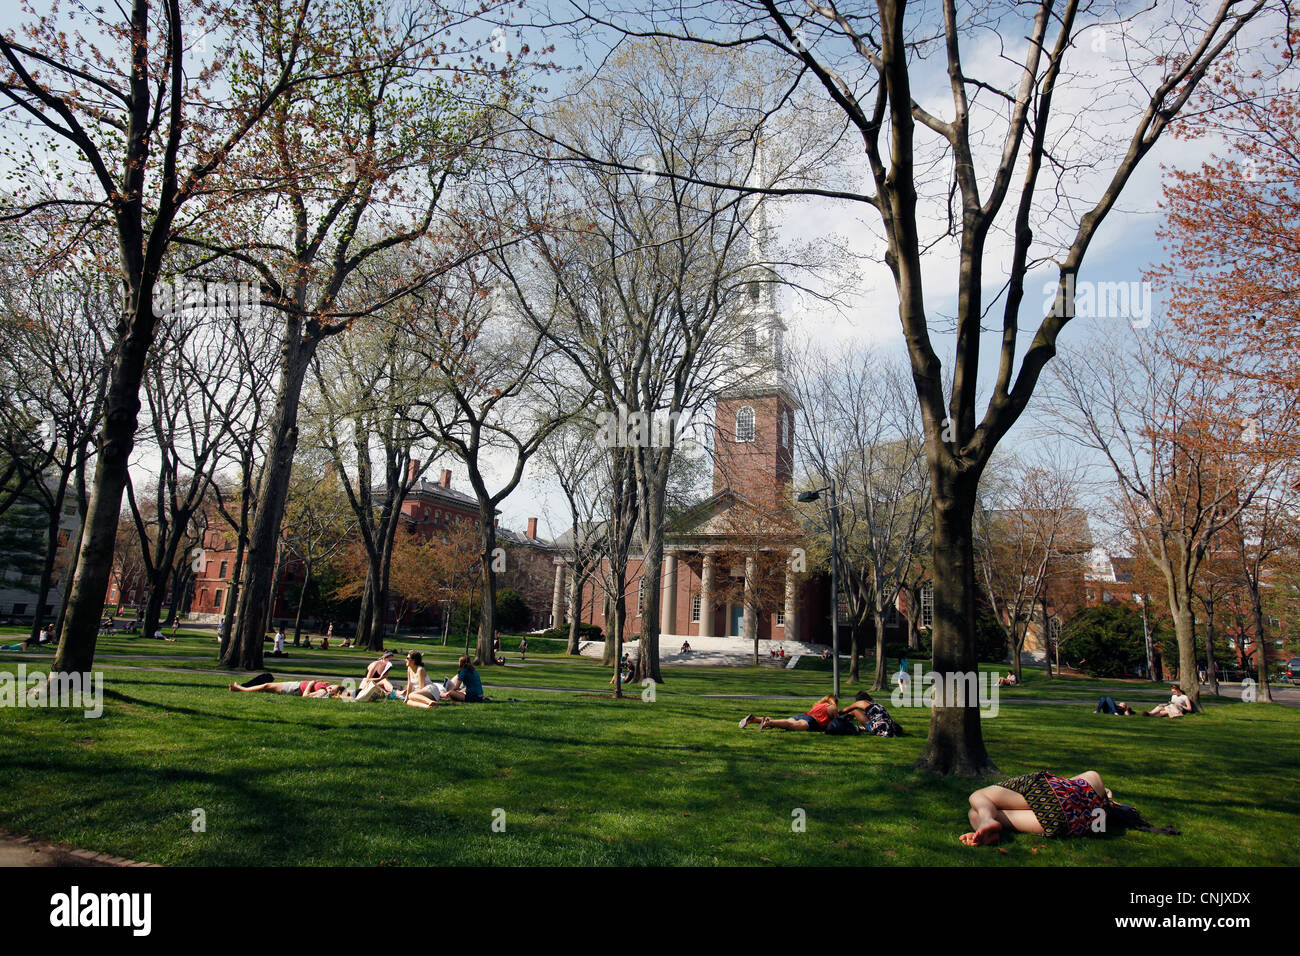 Harvard University, Harvard Yard, Memorial Church - Stock Image